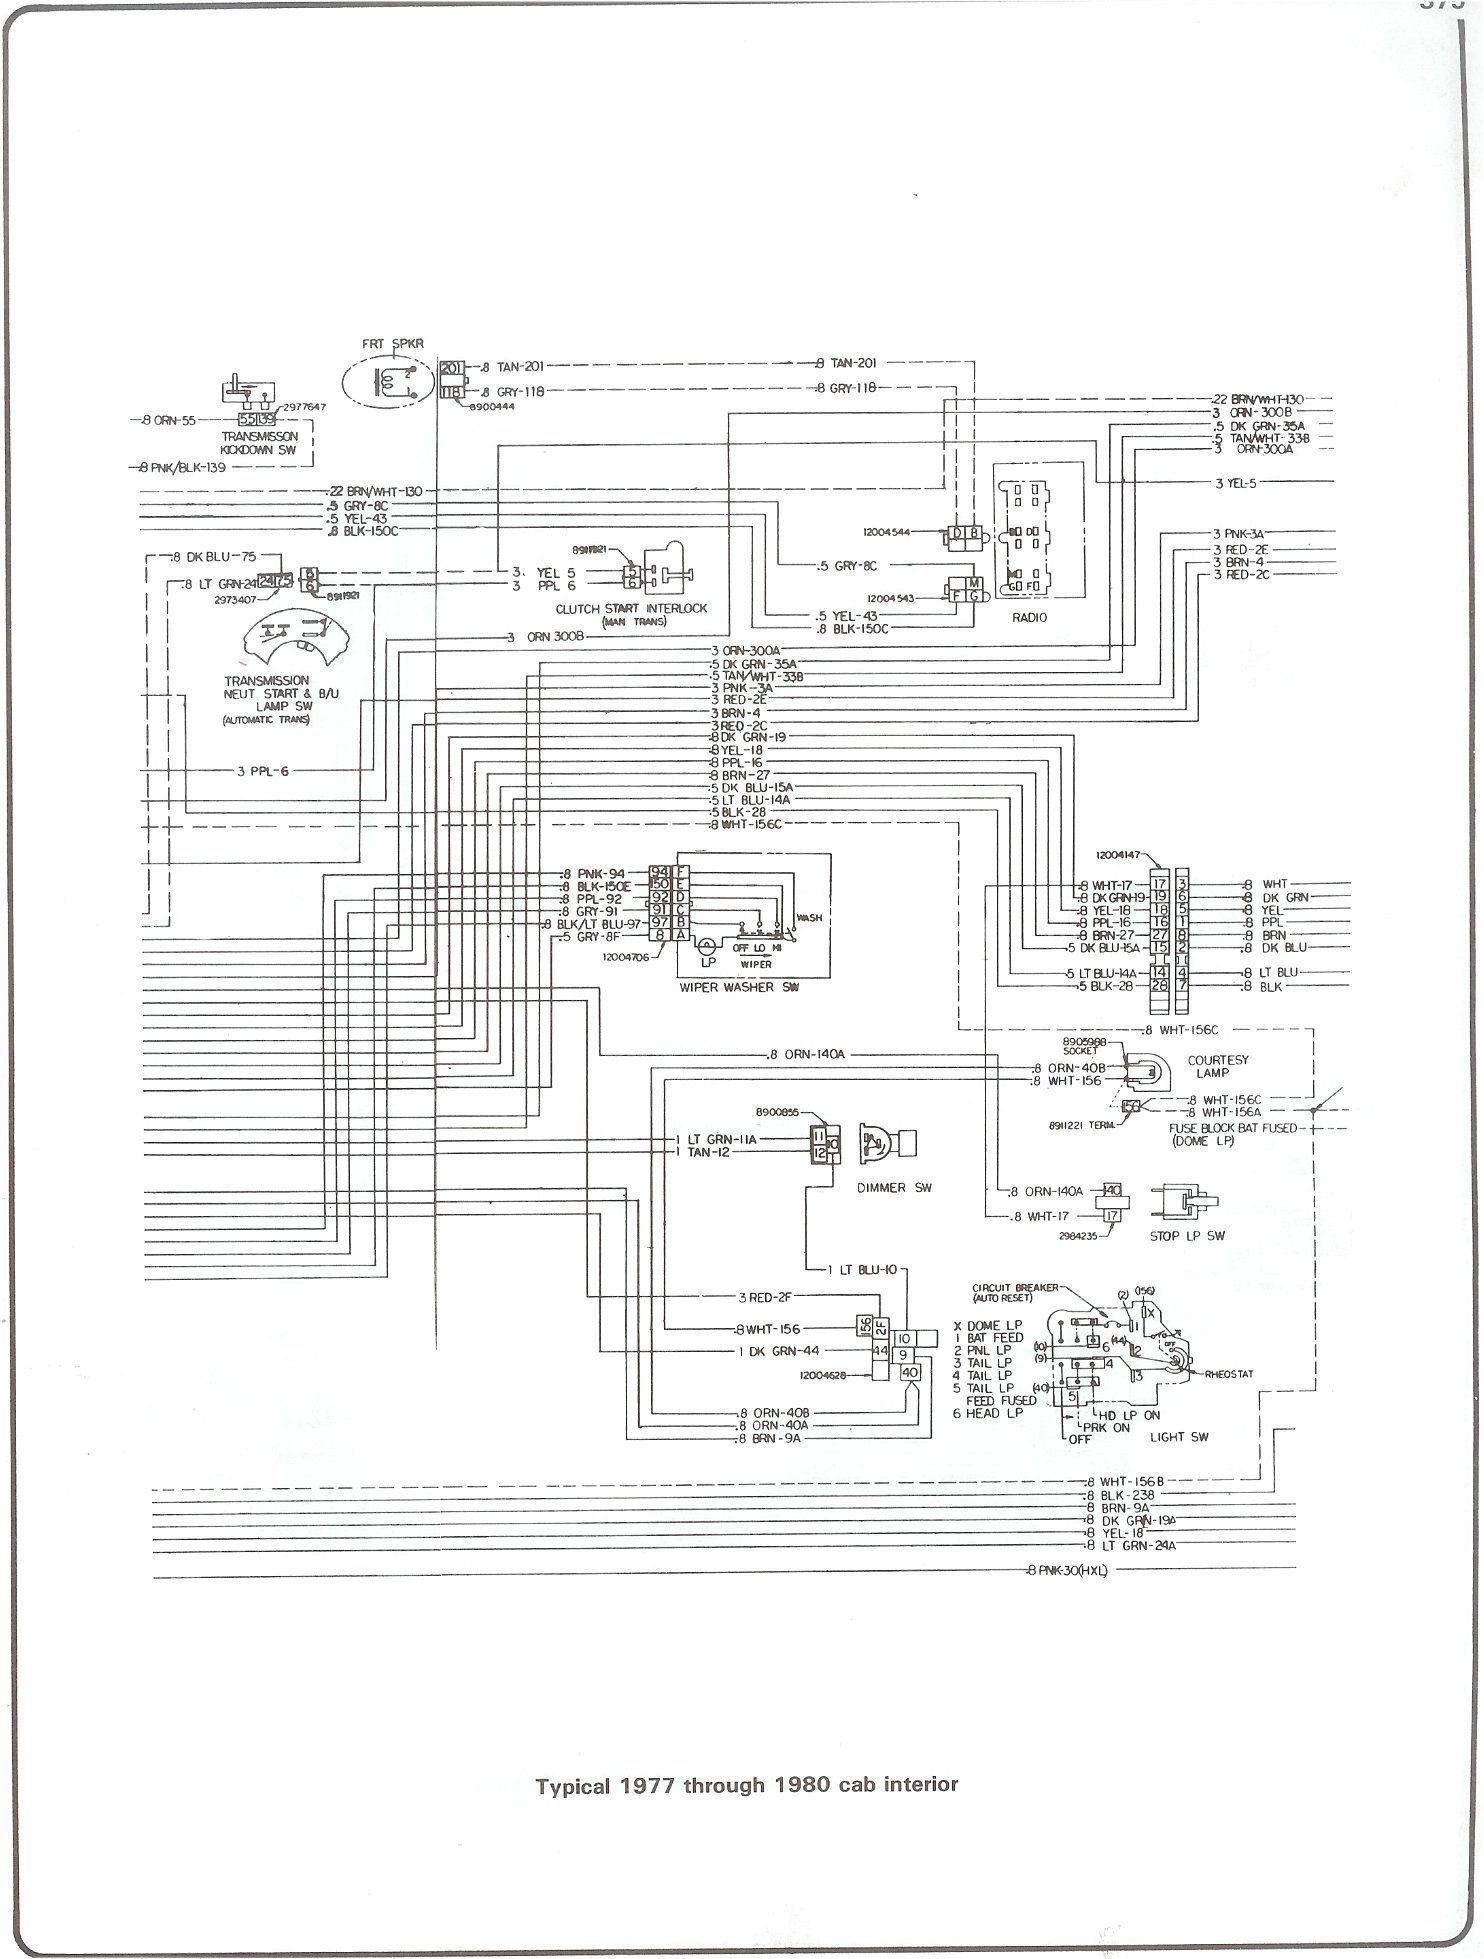 77 80_cab_inter complete 73 87 wiring diagrams Chevy Wiring Diagrams Color at edmiracle.co